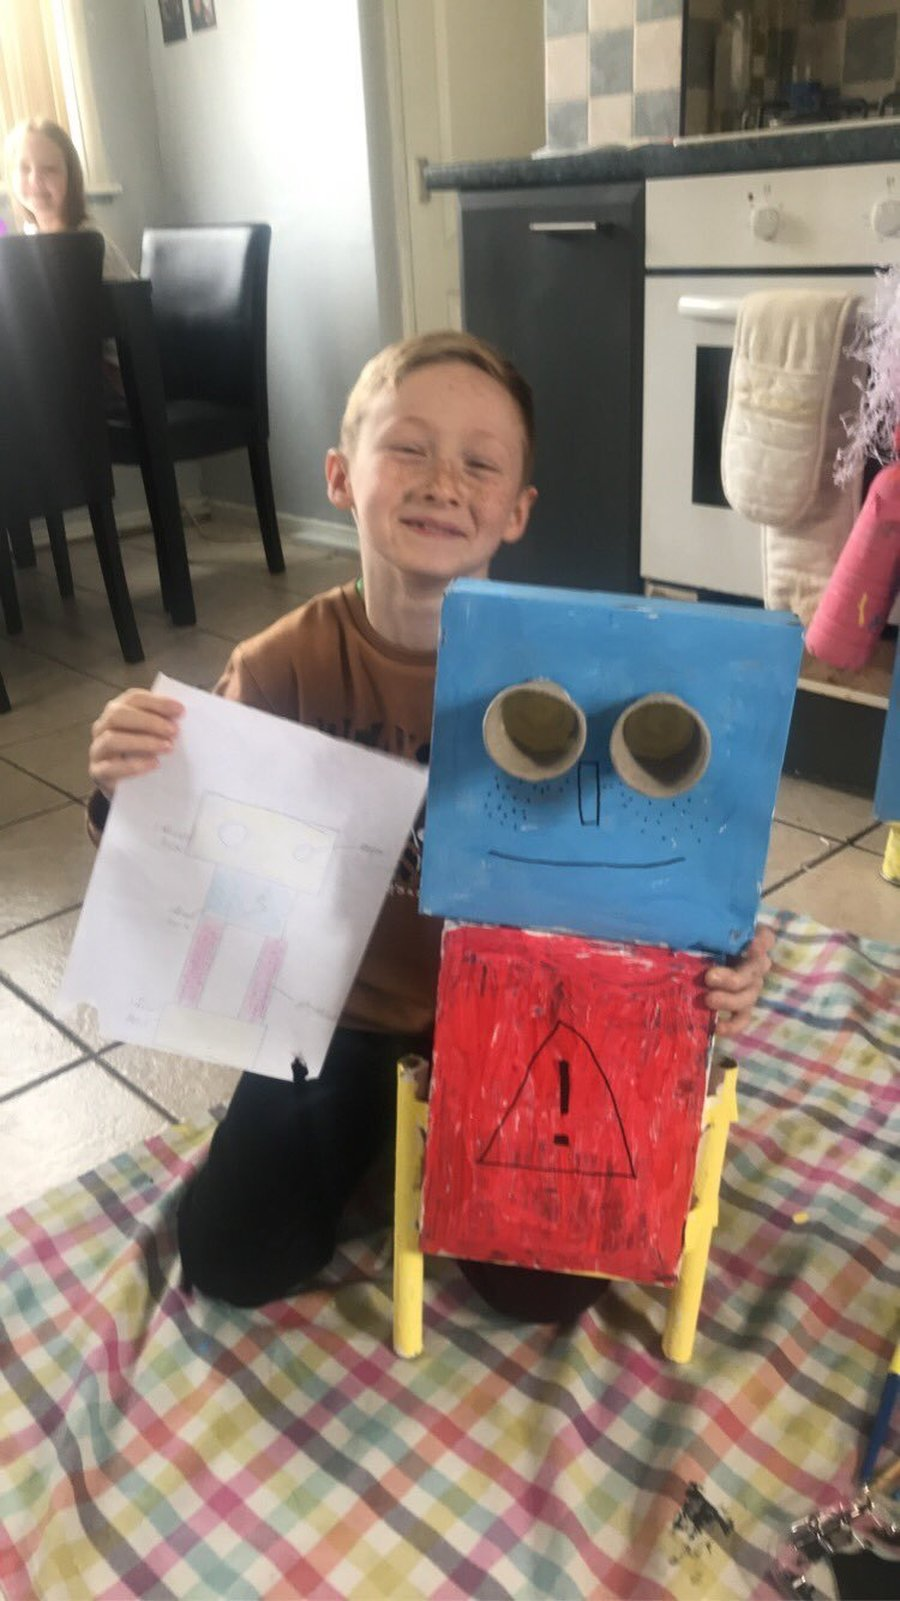 We love this robot made by Charlie!